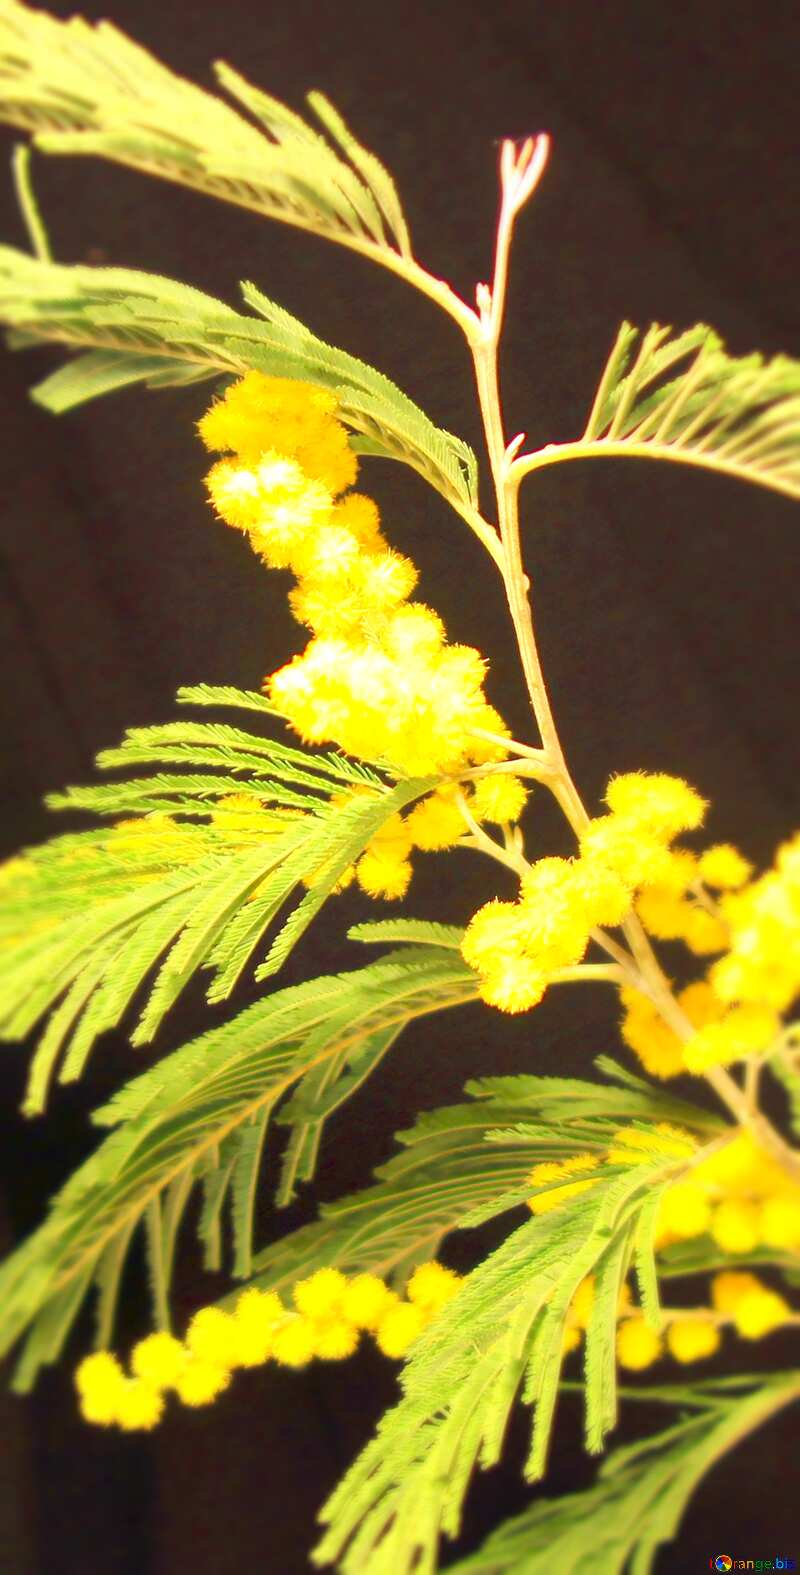 Image for profile picture Mimosa in small vase on black background. №967